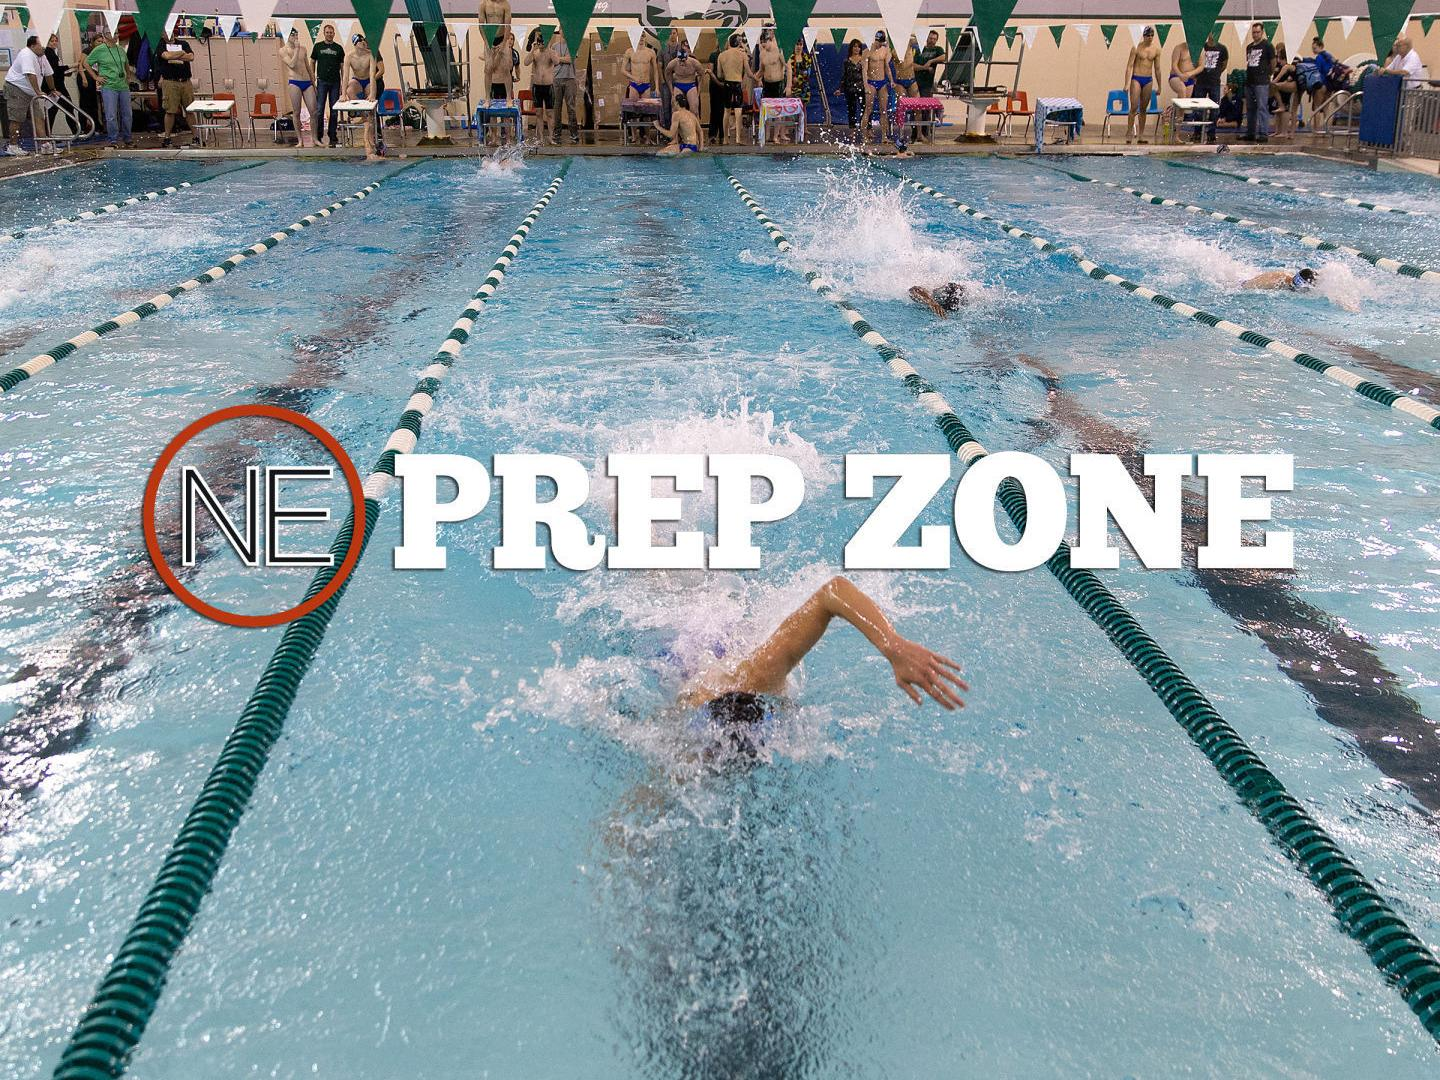 Norfolk swimming and diving teams continue their success - Omaha World-Herald